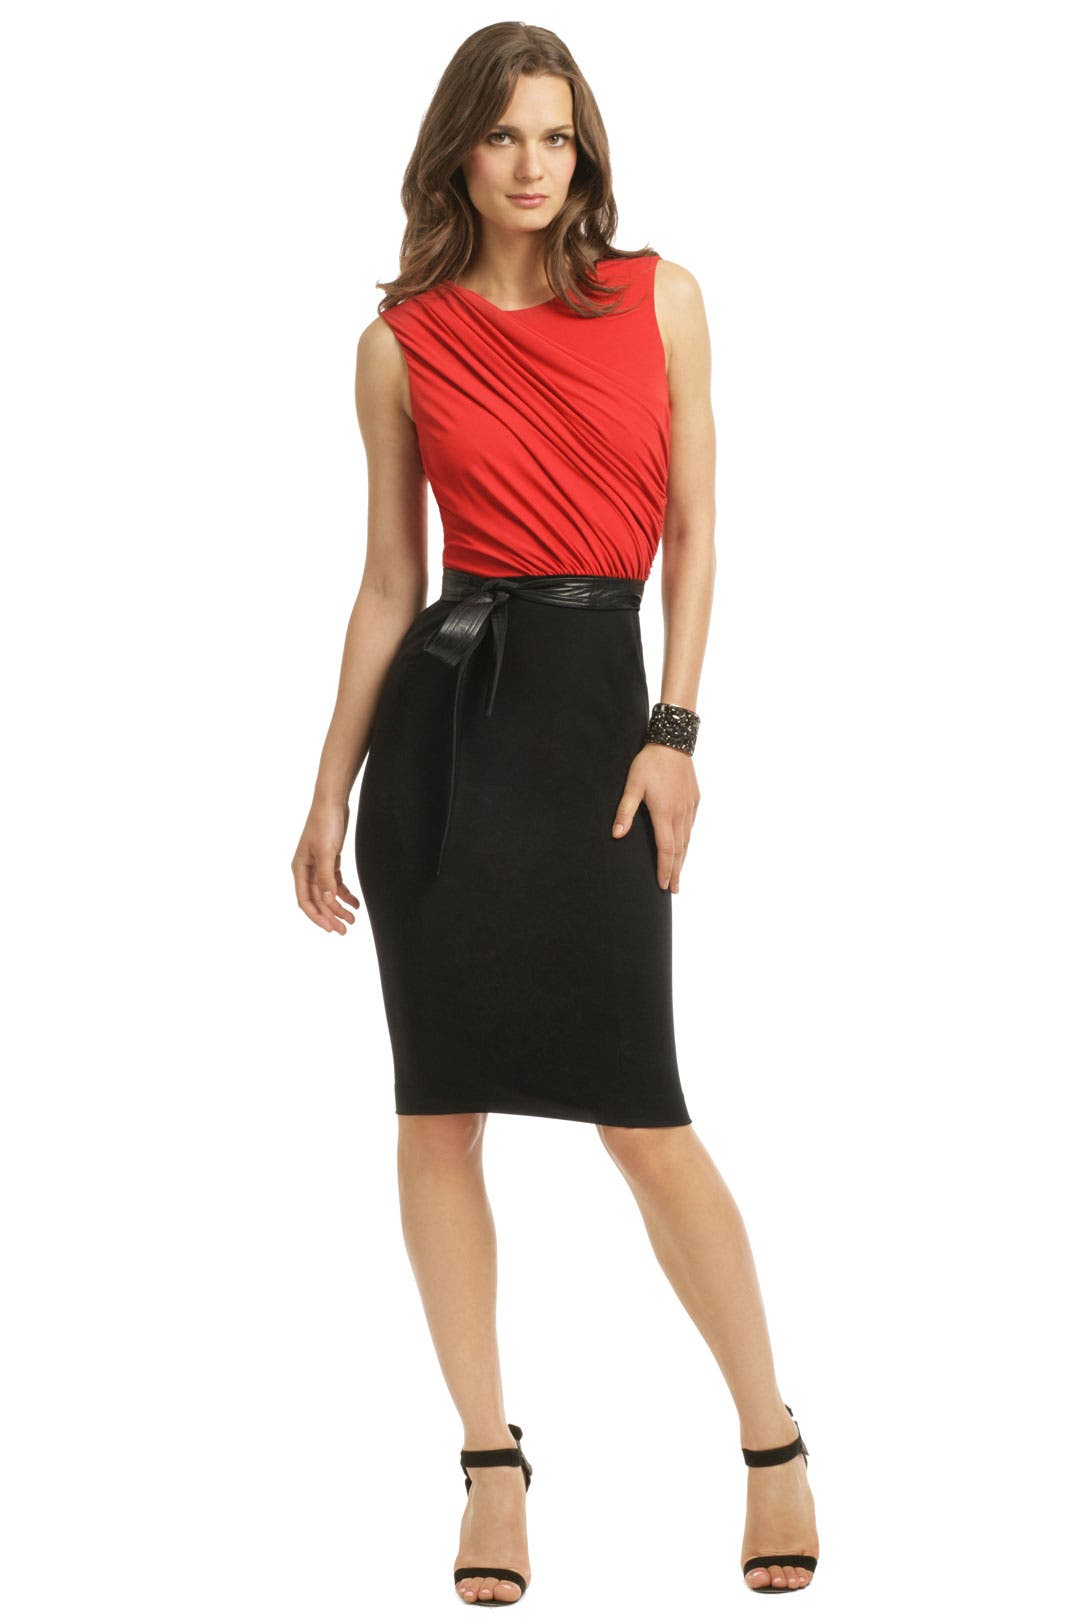 Poker Face Sheath by Narciso Rodriguez